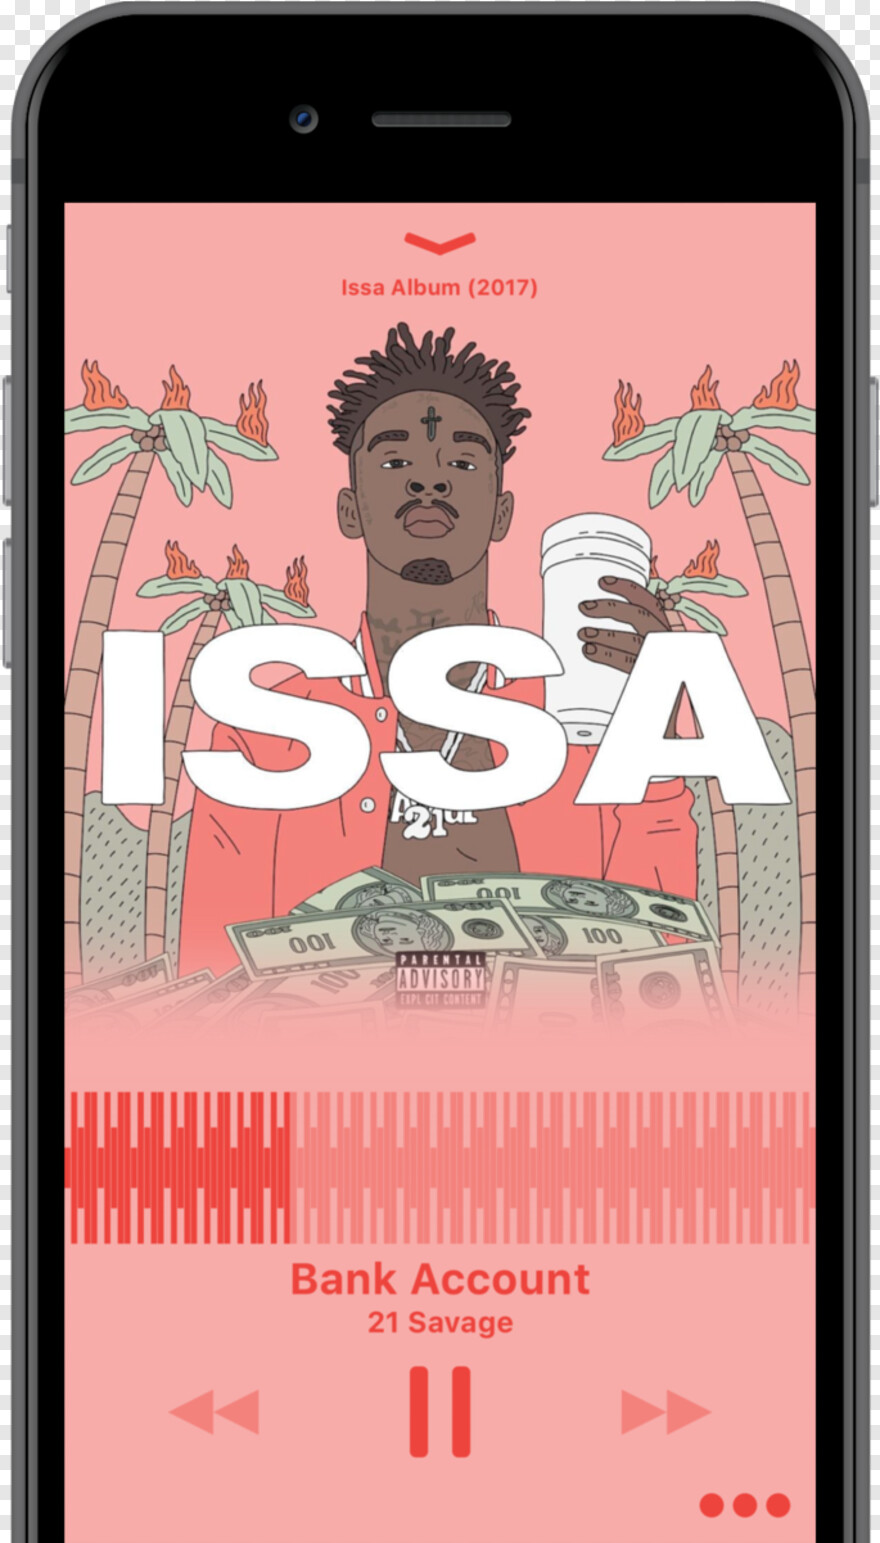 21 savage 21 savage issa album hd png download 1600x1200 2166193 png image pngjoy pngjoy